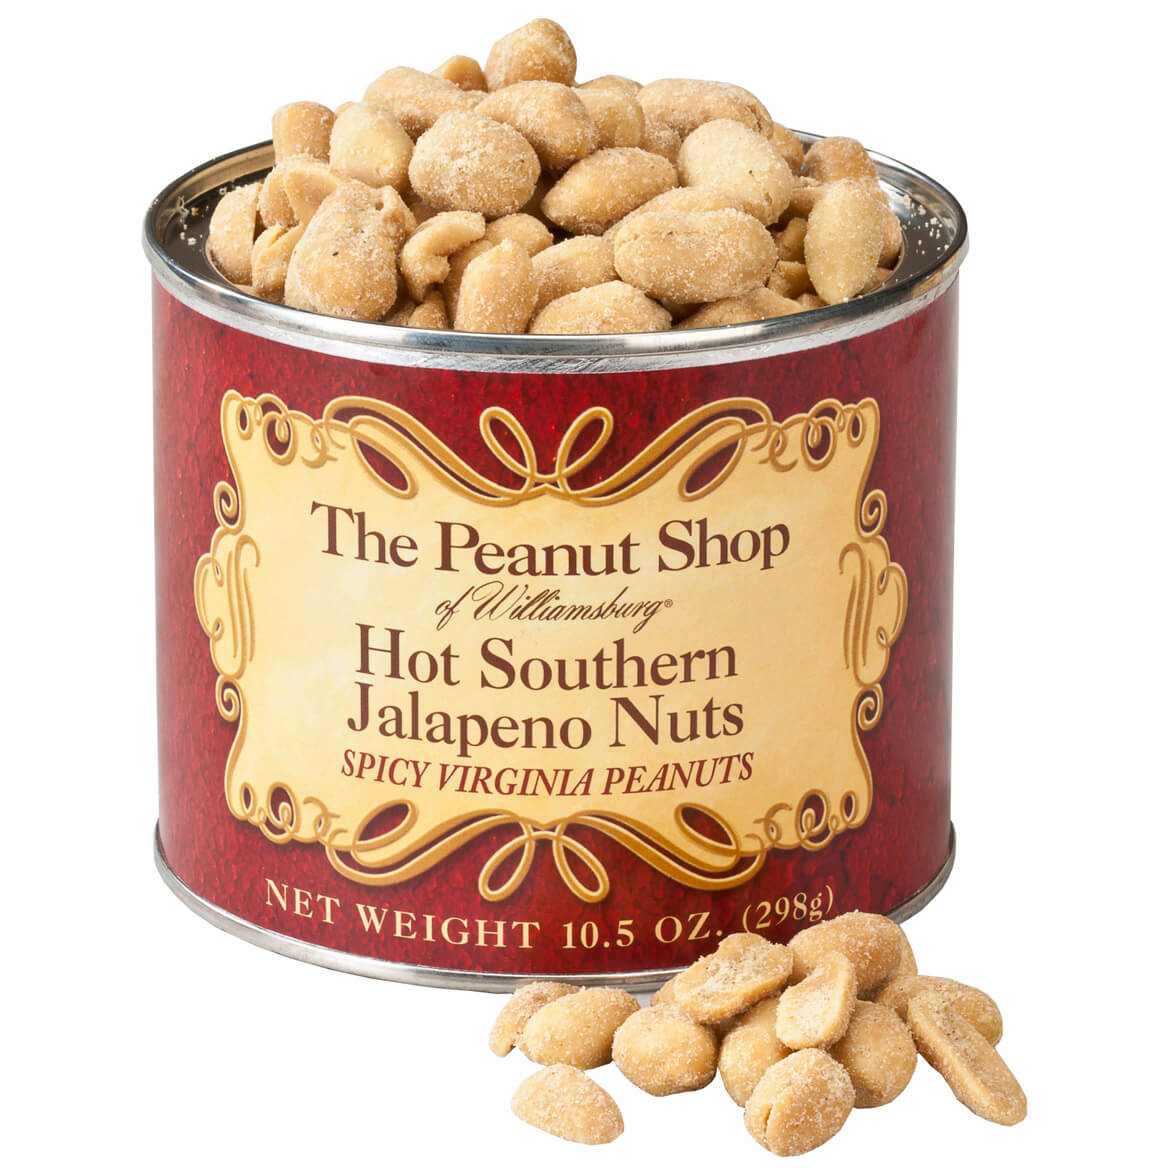 The Peanut Shop® Hot Southern Jalapeno Peanuts, 10.5 oz.